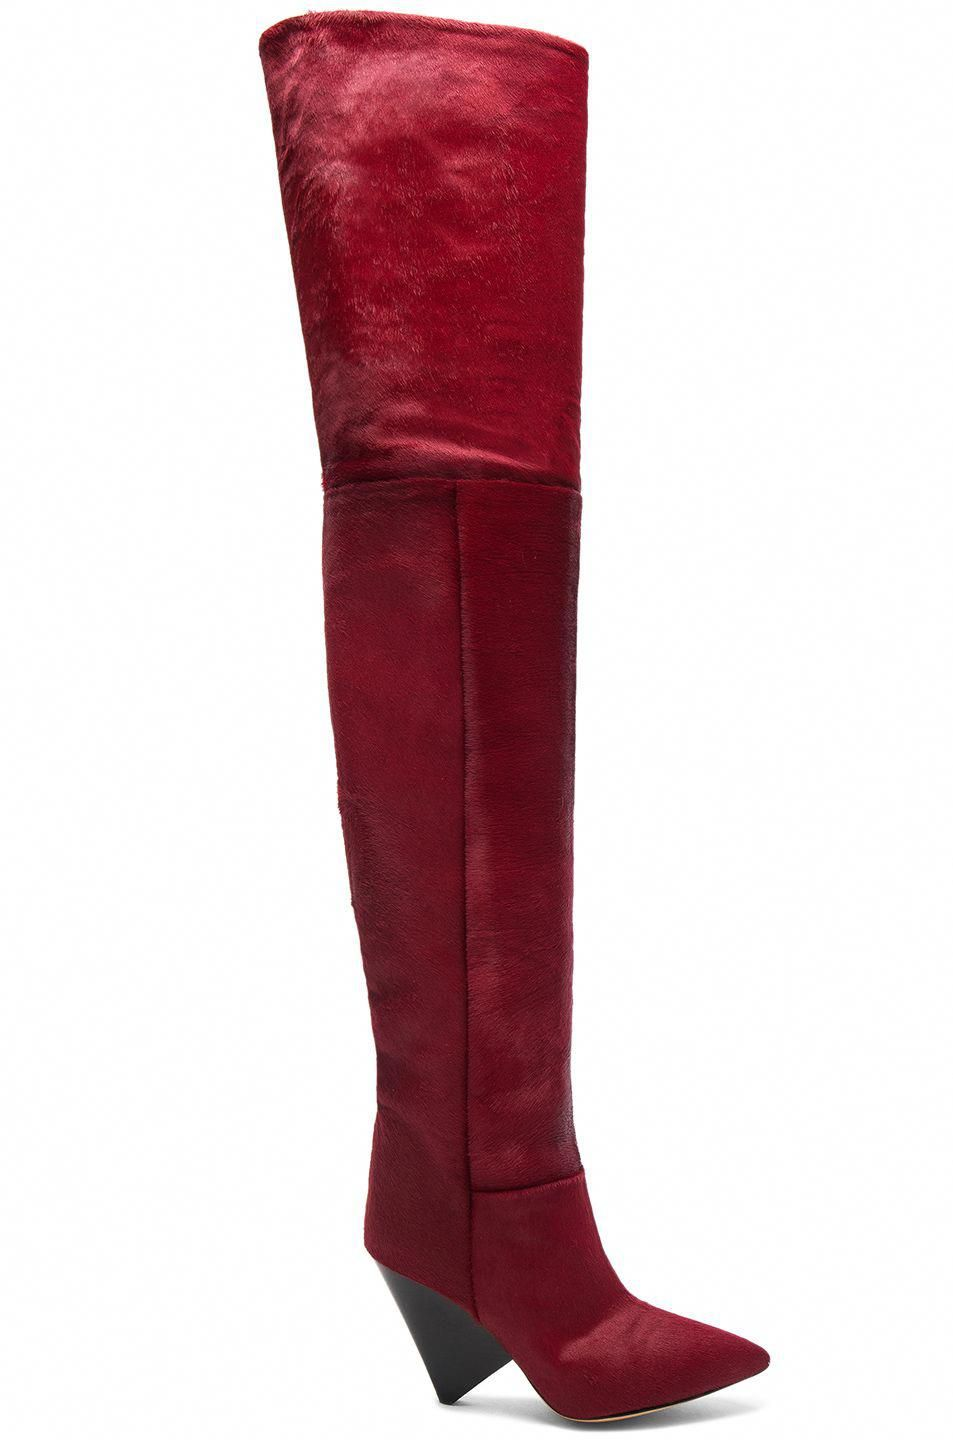 b9af06f3884 Image 1 of Isabel Marant Calf Hair Lostynn Thigh High Boots in Red   whowearsthighhighboots